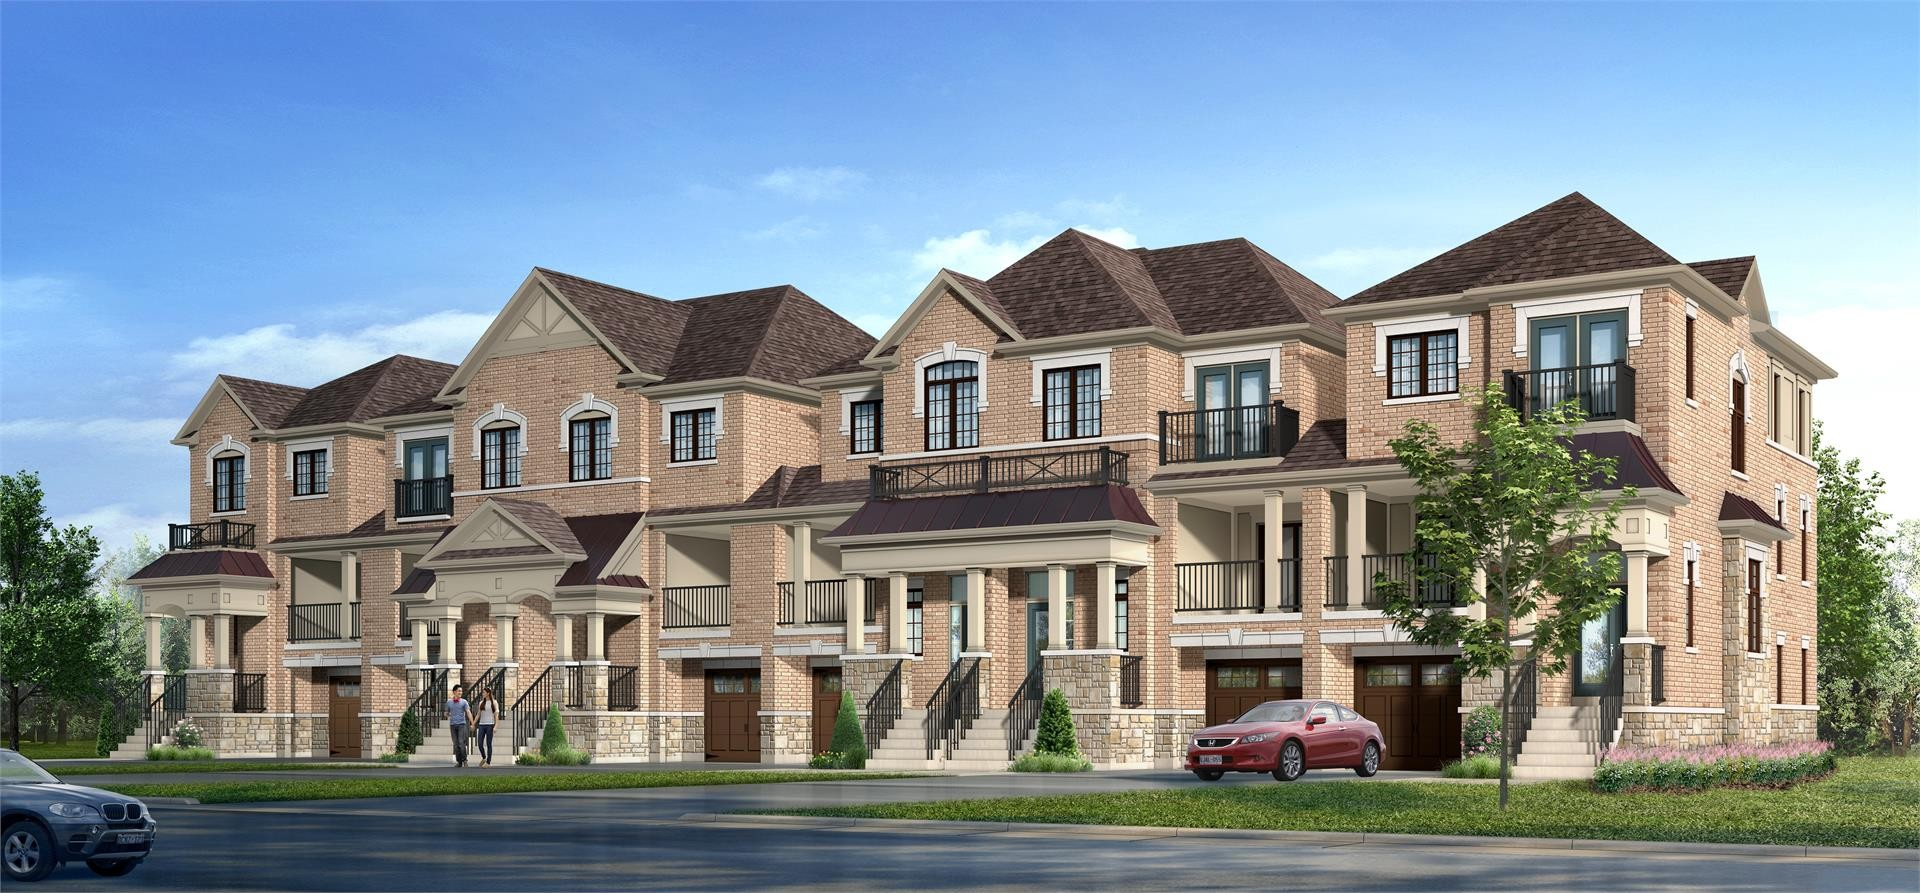 Forest Gate at Lionhead Luxury Towns at 8475 Mississauga Rd, Brampton 0